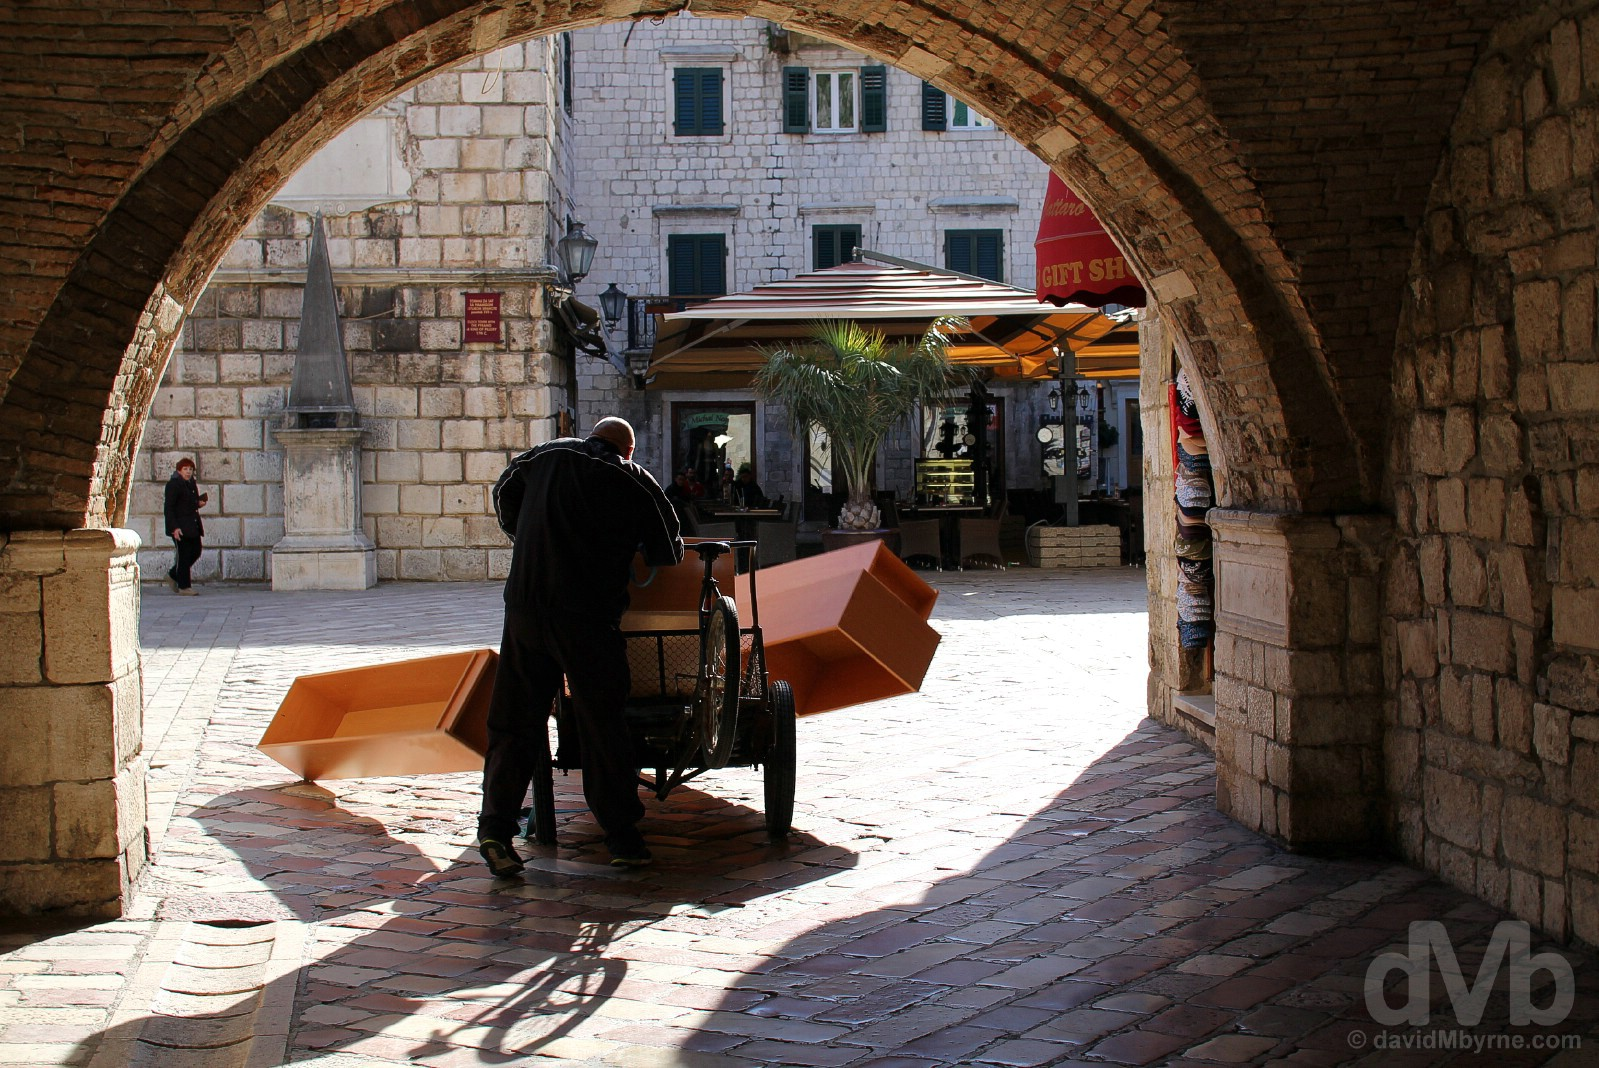 Passing through the 1555 Sea/West Gate into Trg od Oruzja (Arms Square) of Stari Grad (Old Town) Kotor, Montenegro. April 20, 2017.